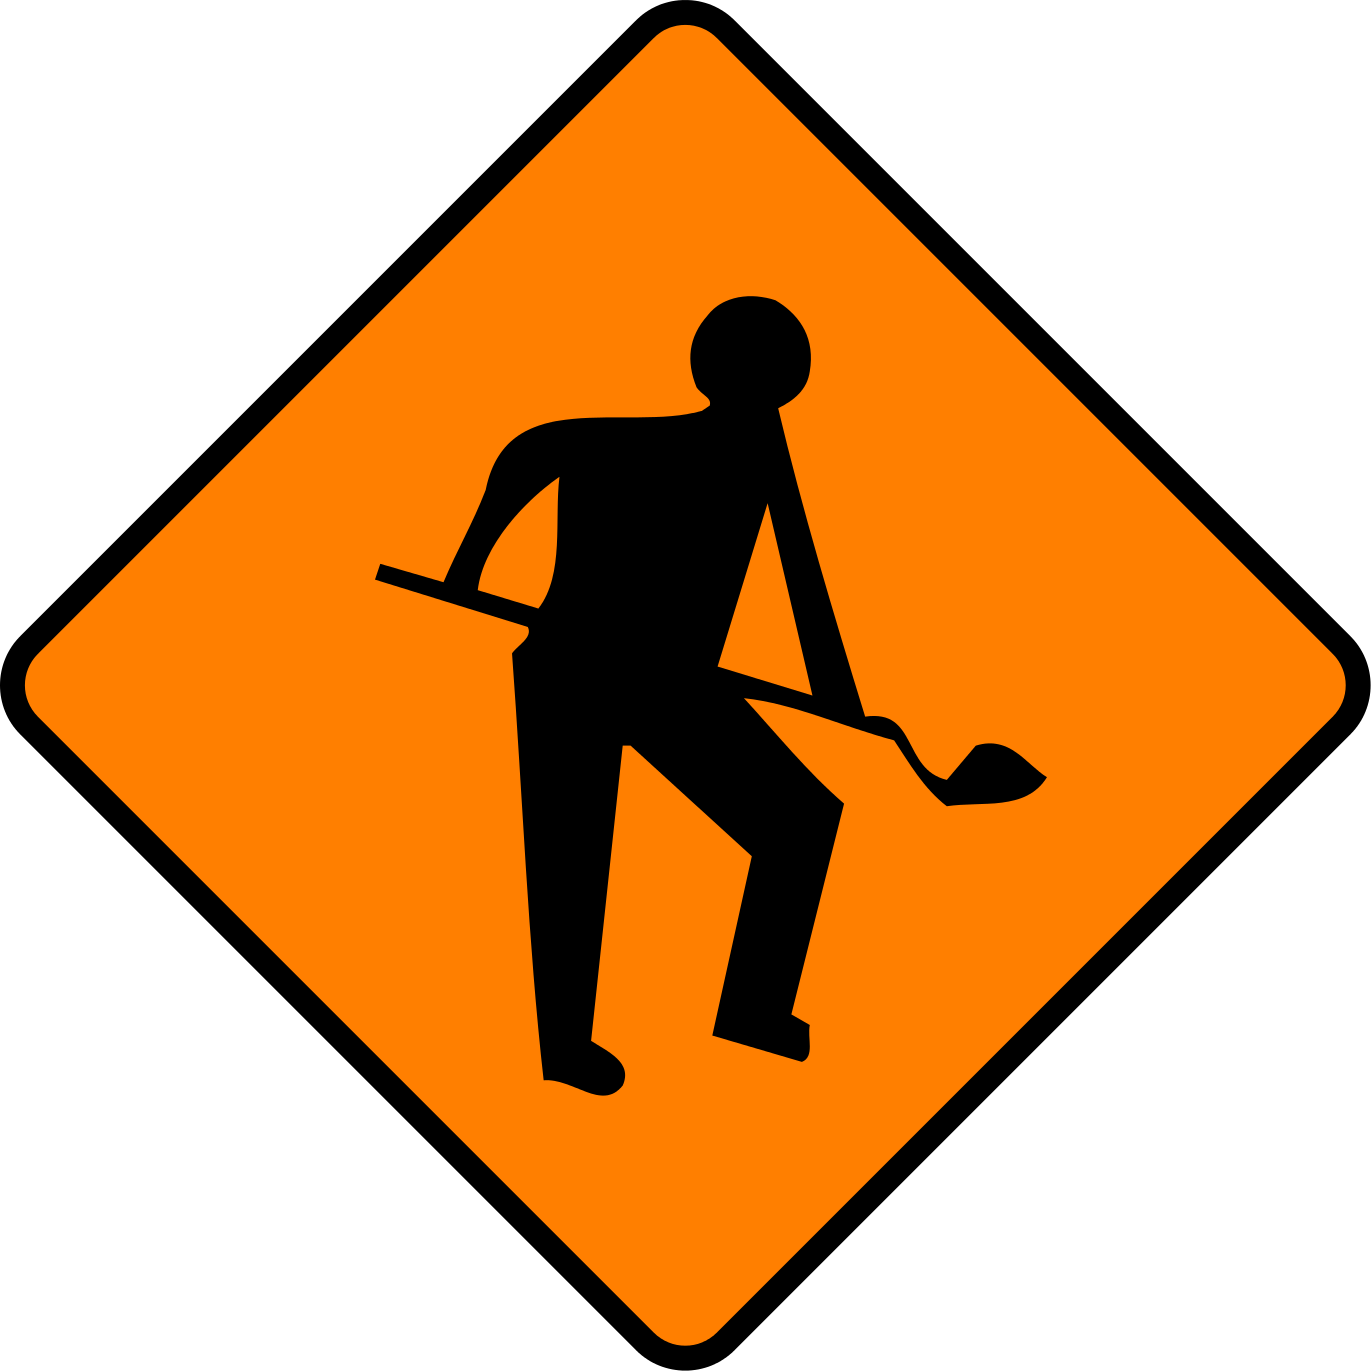 File ireland sign wk. Working clipart road work